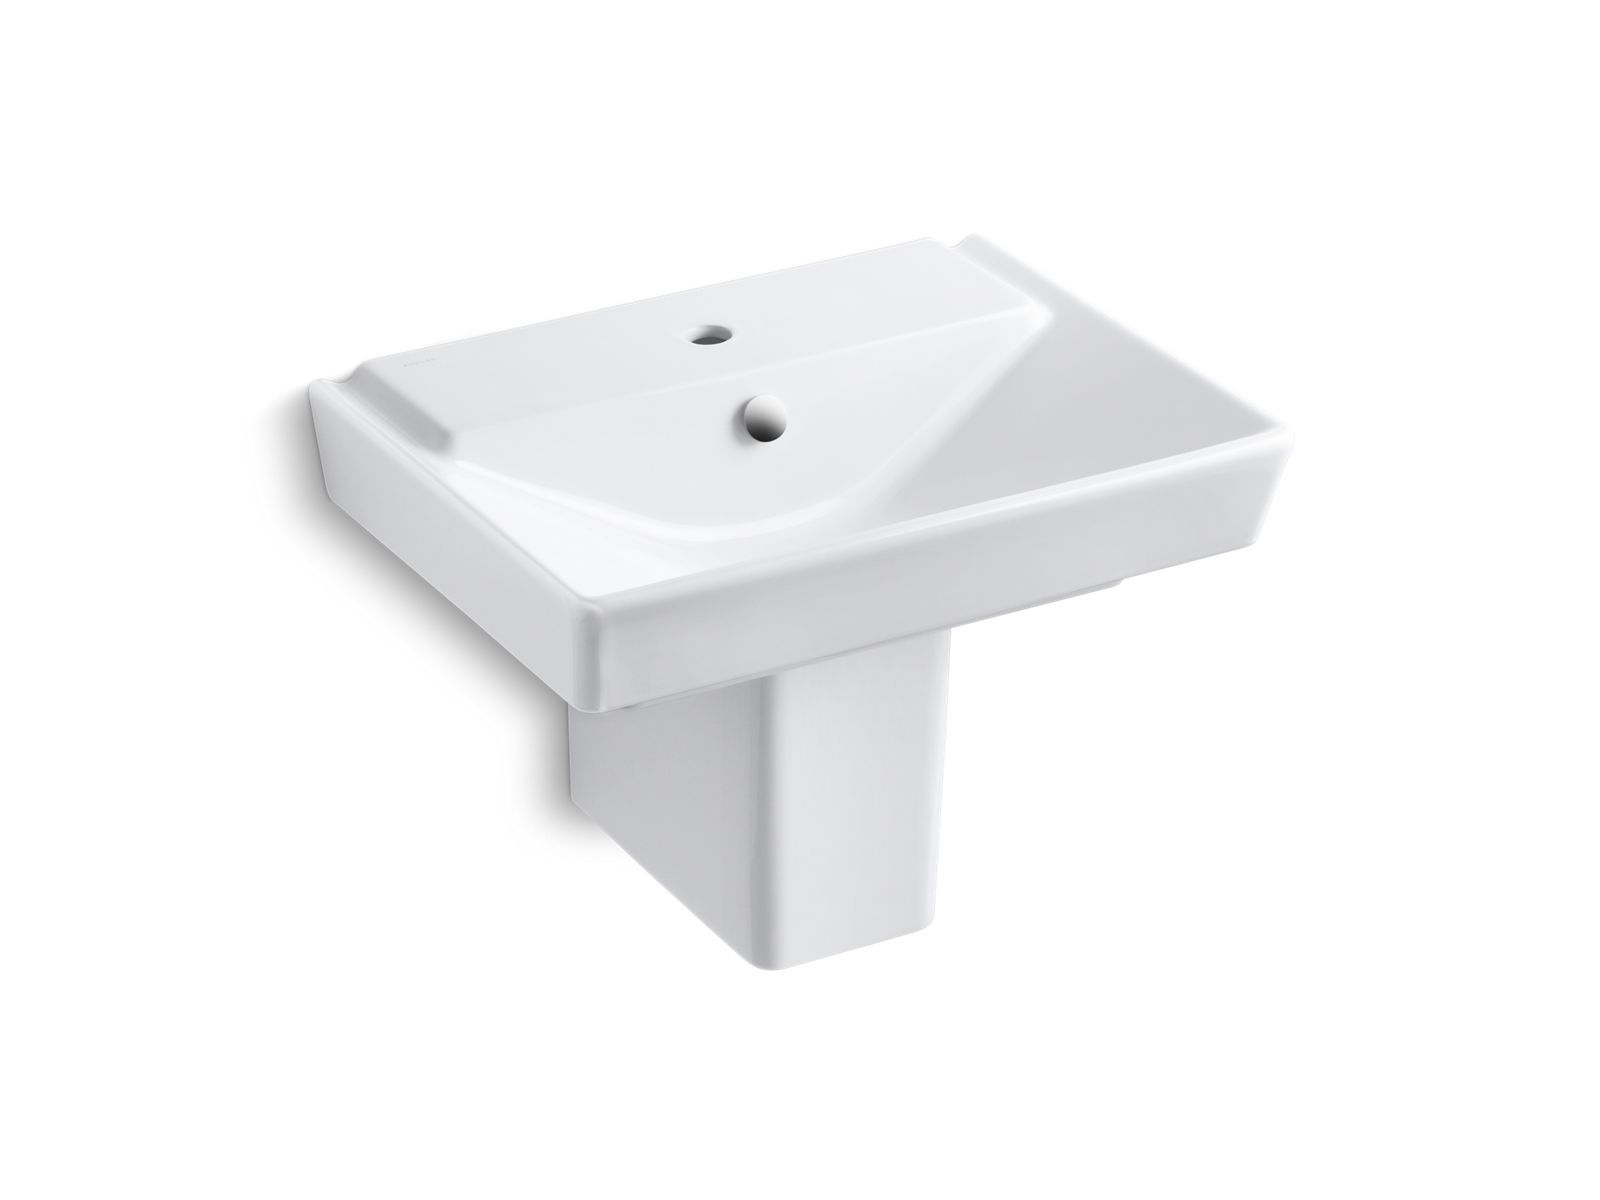 "Rêve 23"" Semi-Pedestal Bathroom Sink with Single Faucet Hole and Shroud"